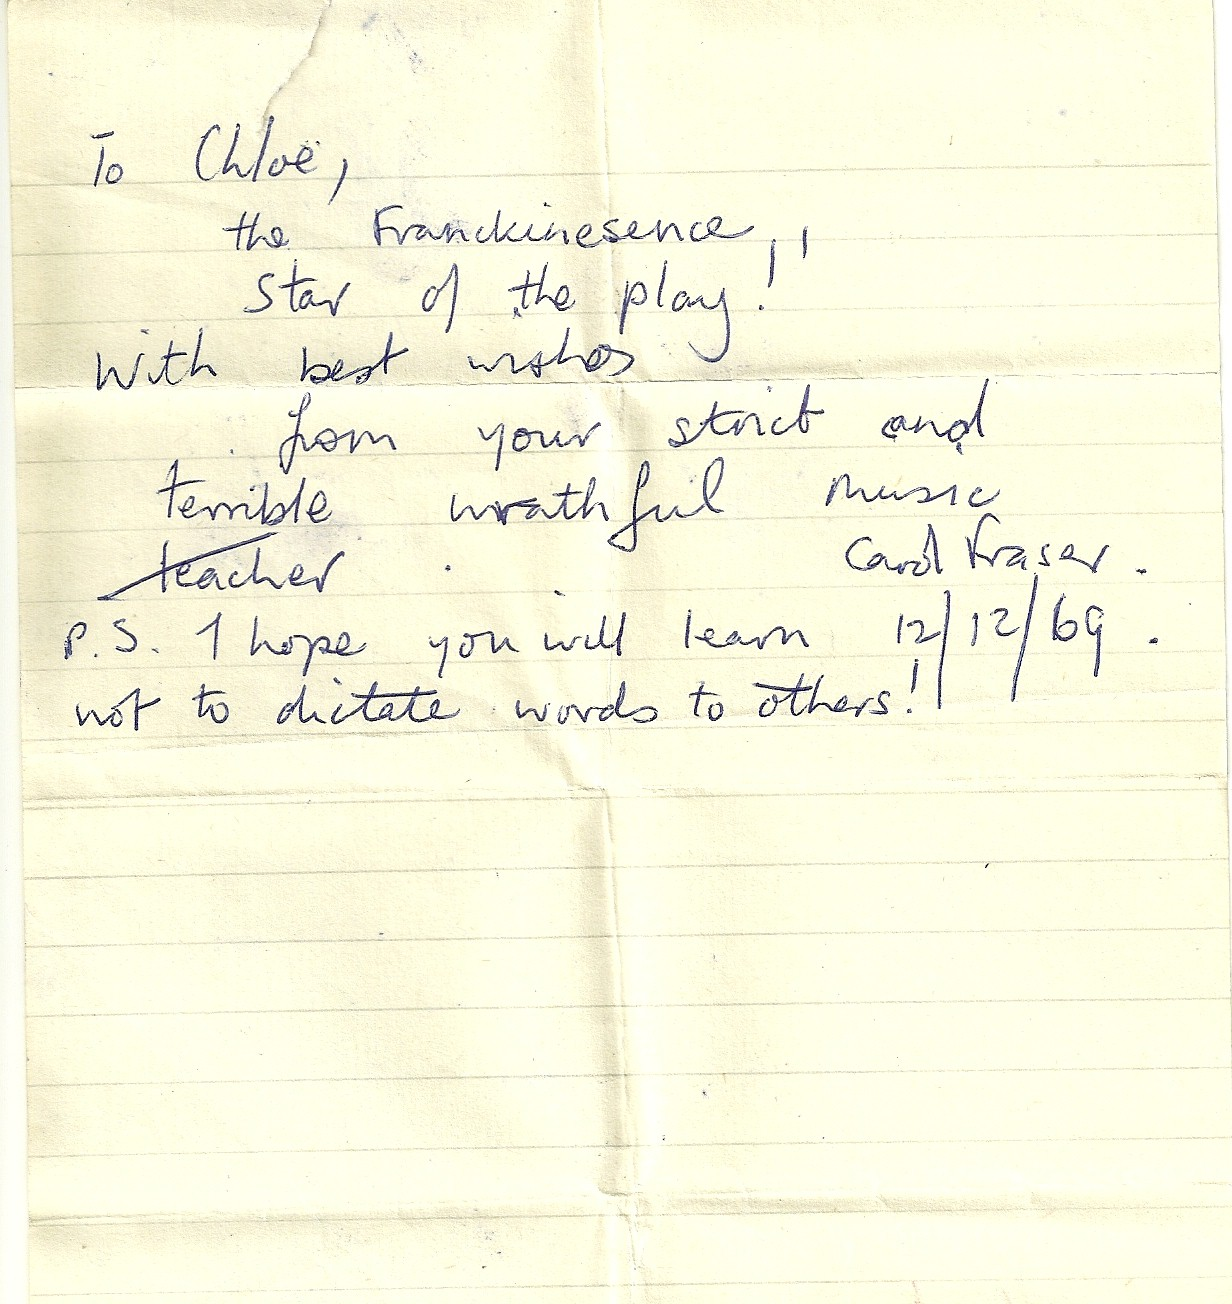 Note from a music teacher to the 'star of the play'